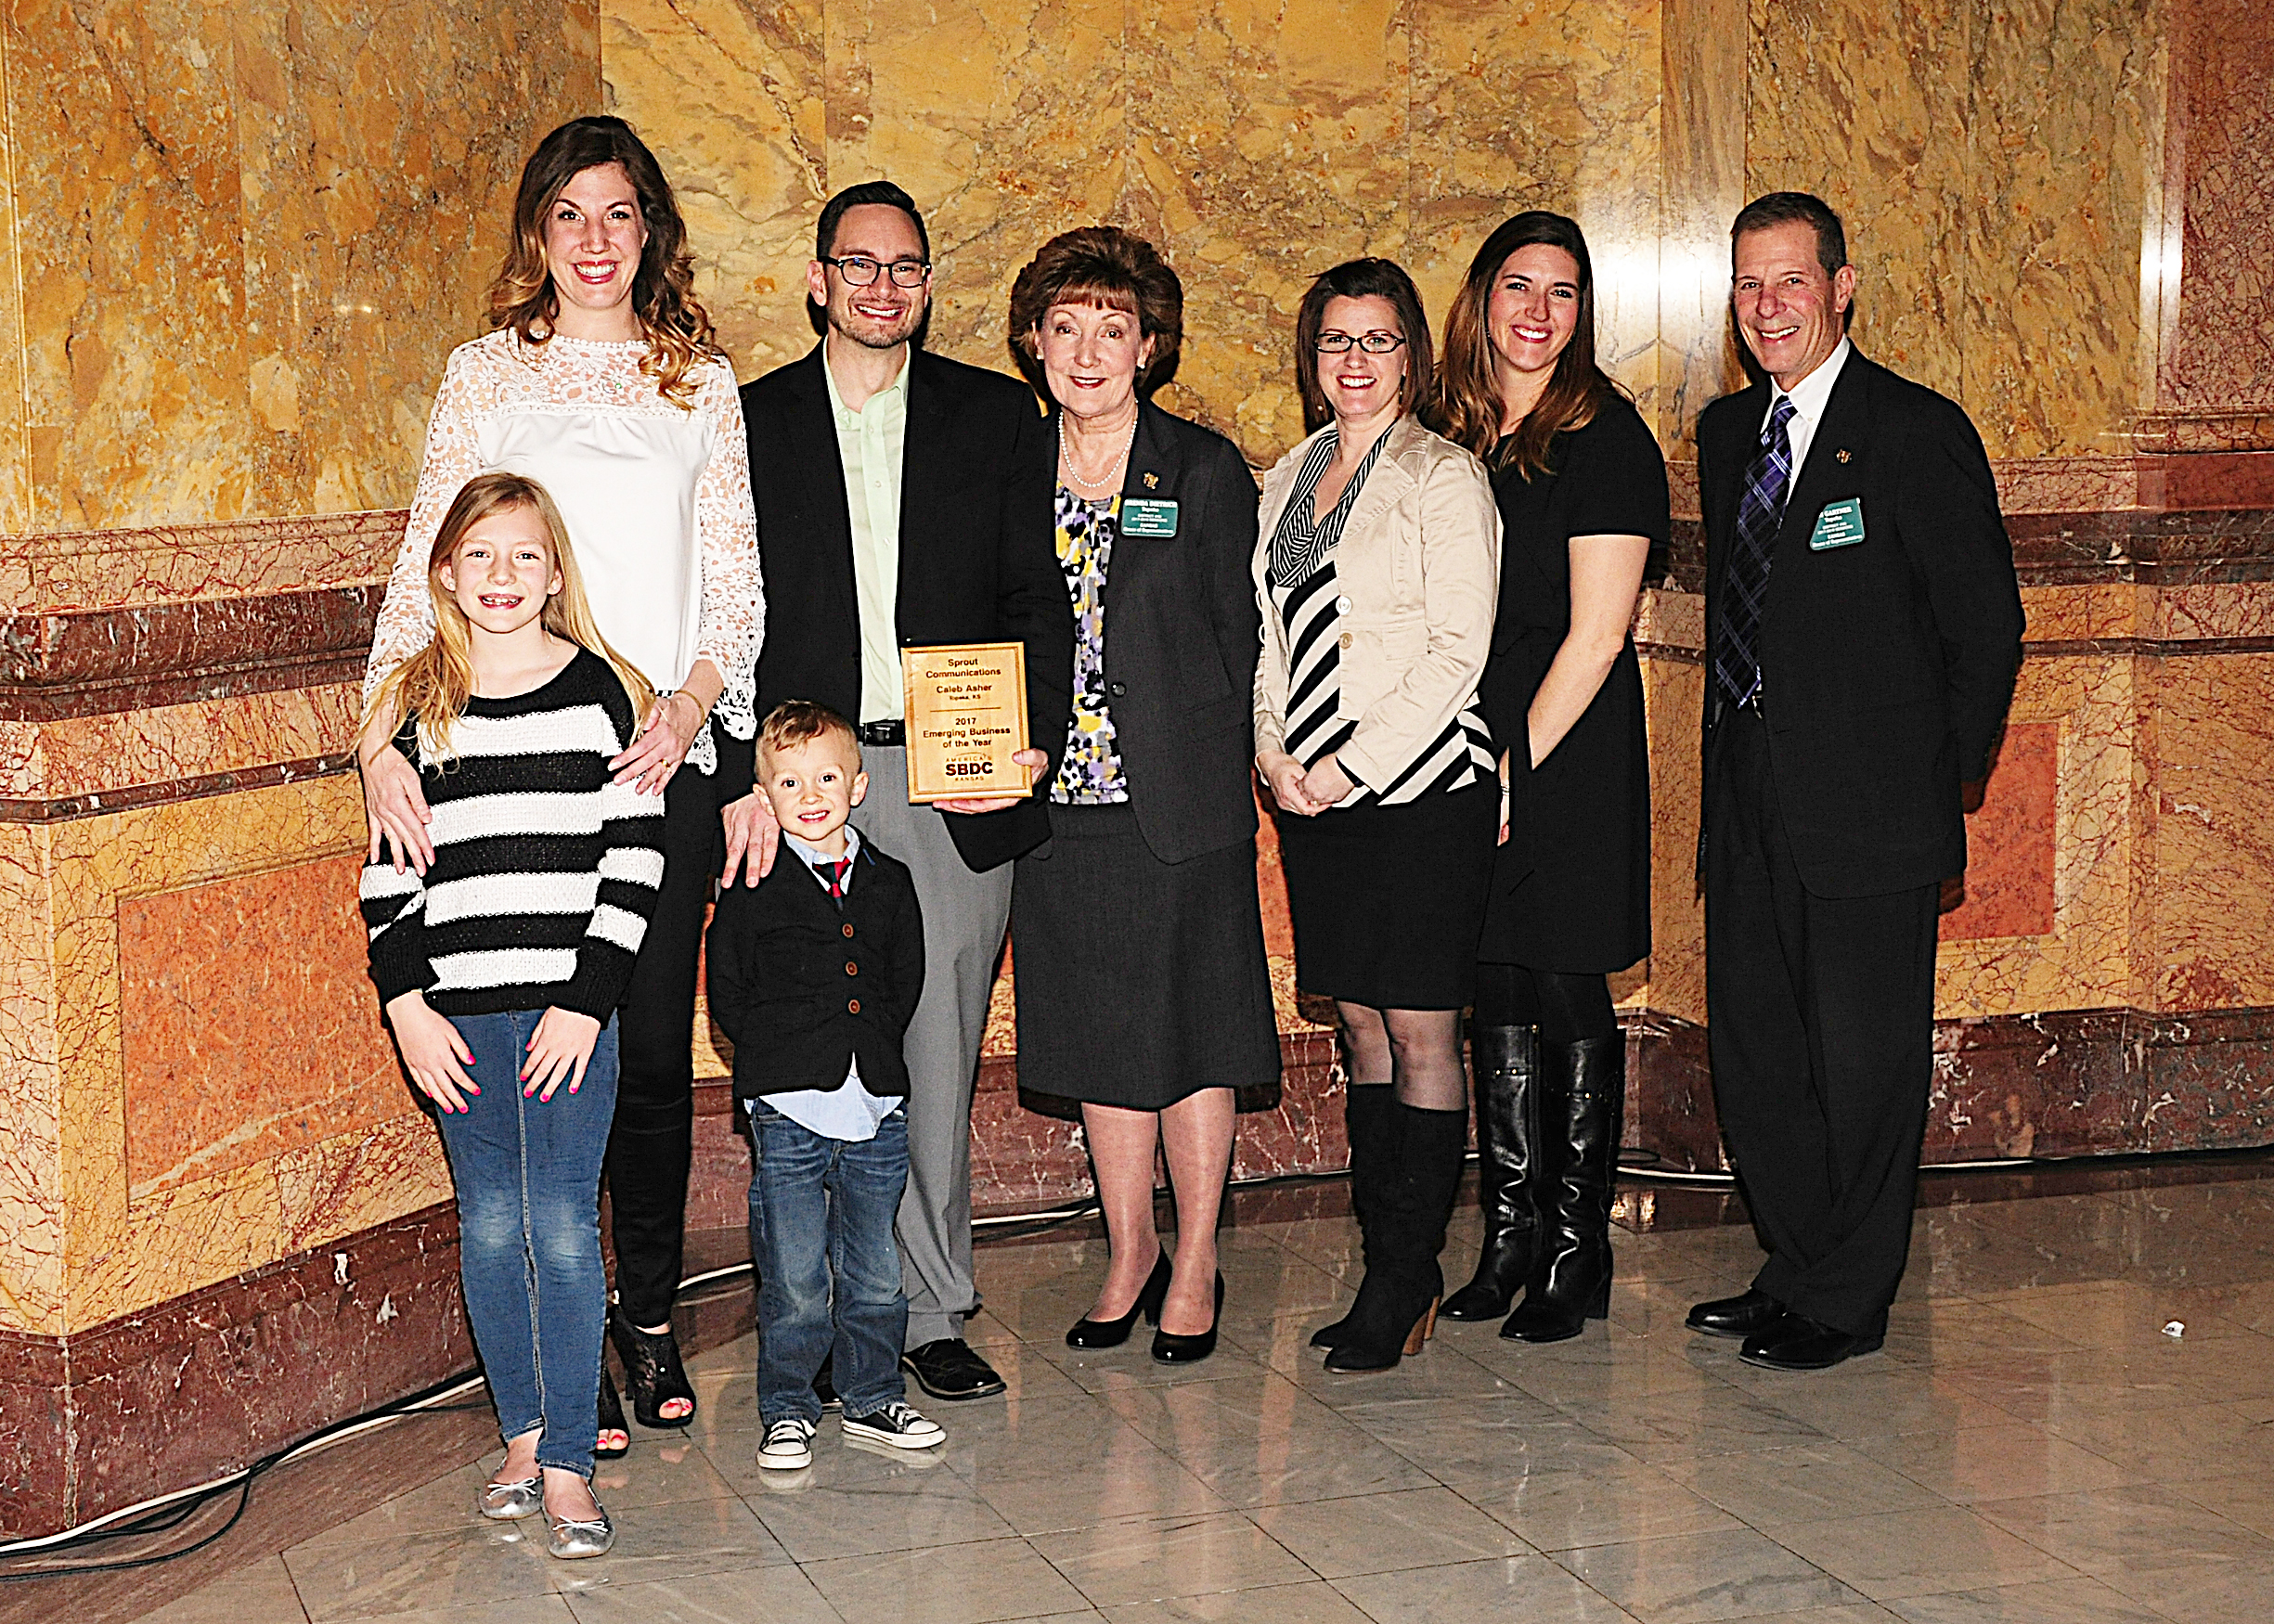 Sprout - Caleb Asher and family, Rep. Dietrich, employees, Rep. Gartner